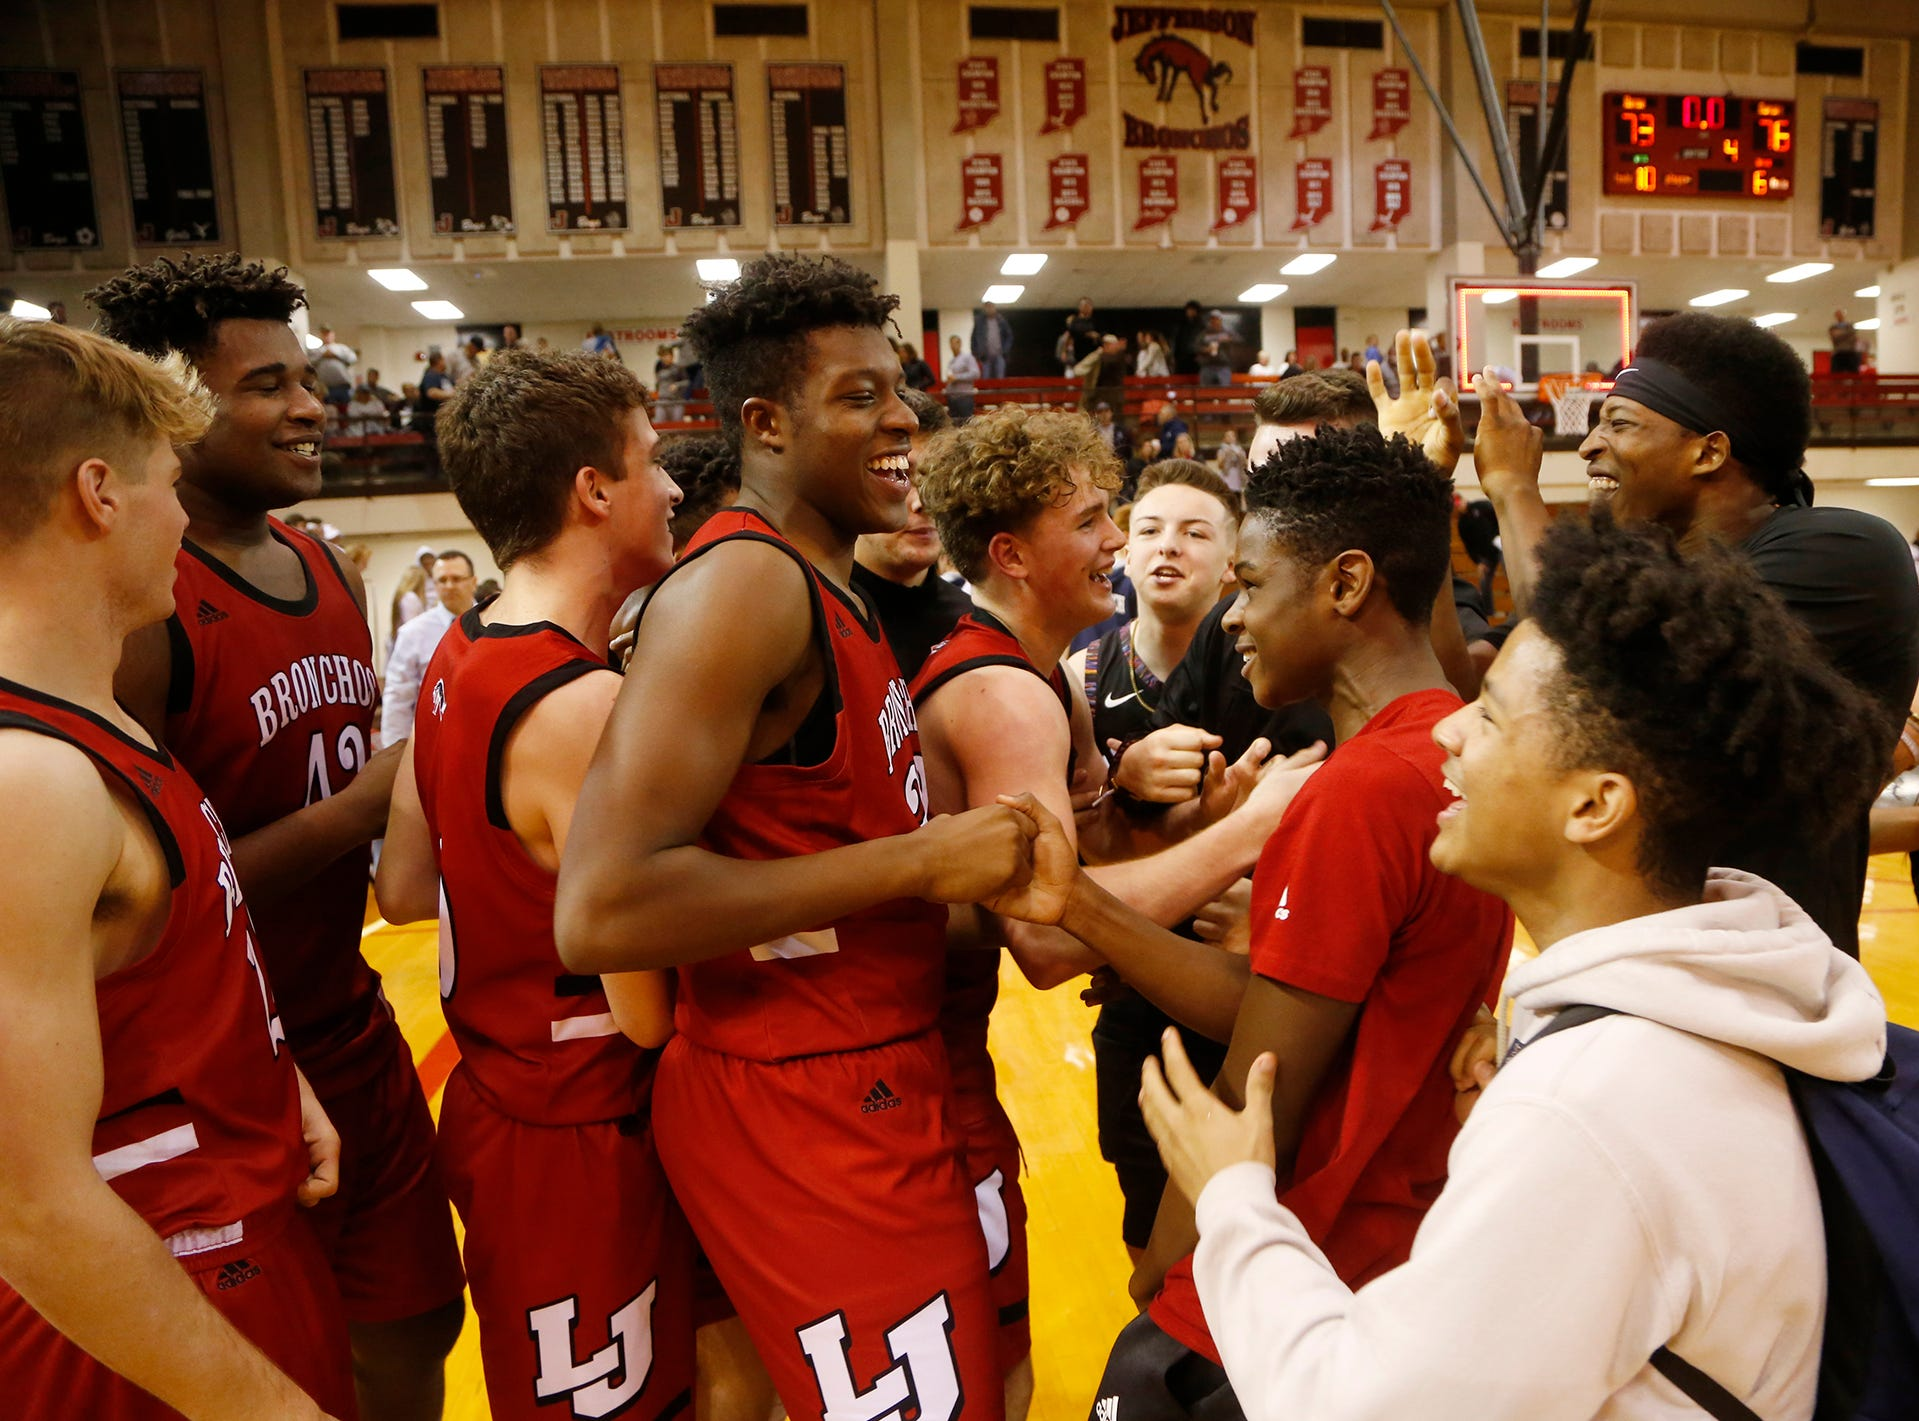 Lafayette Jeff players and classmates celebrate after defeating Central Catholic 76-73 in the championship of the Franciscan Health Hoops Classic Saturday, December 1, 2018, at Lafayette Jeff.